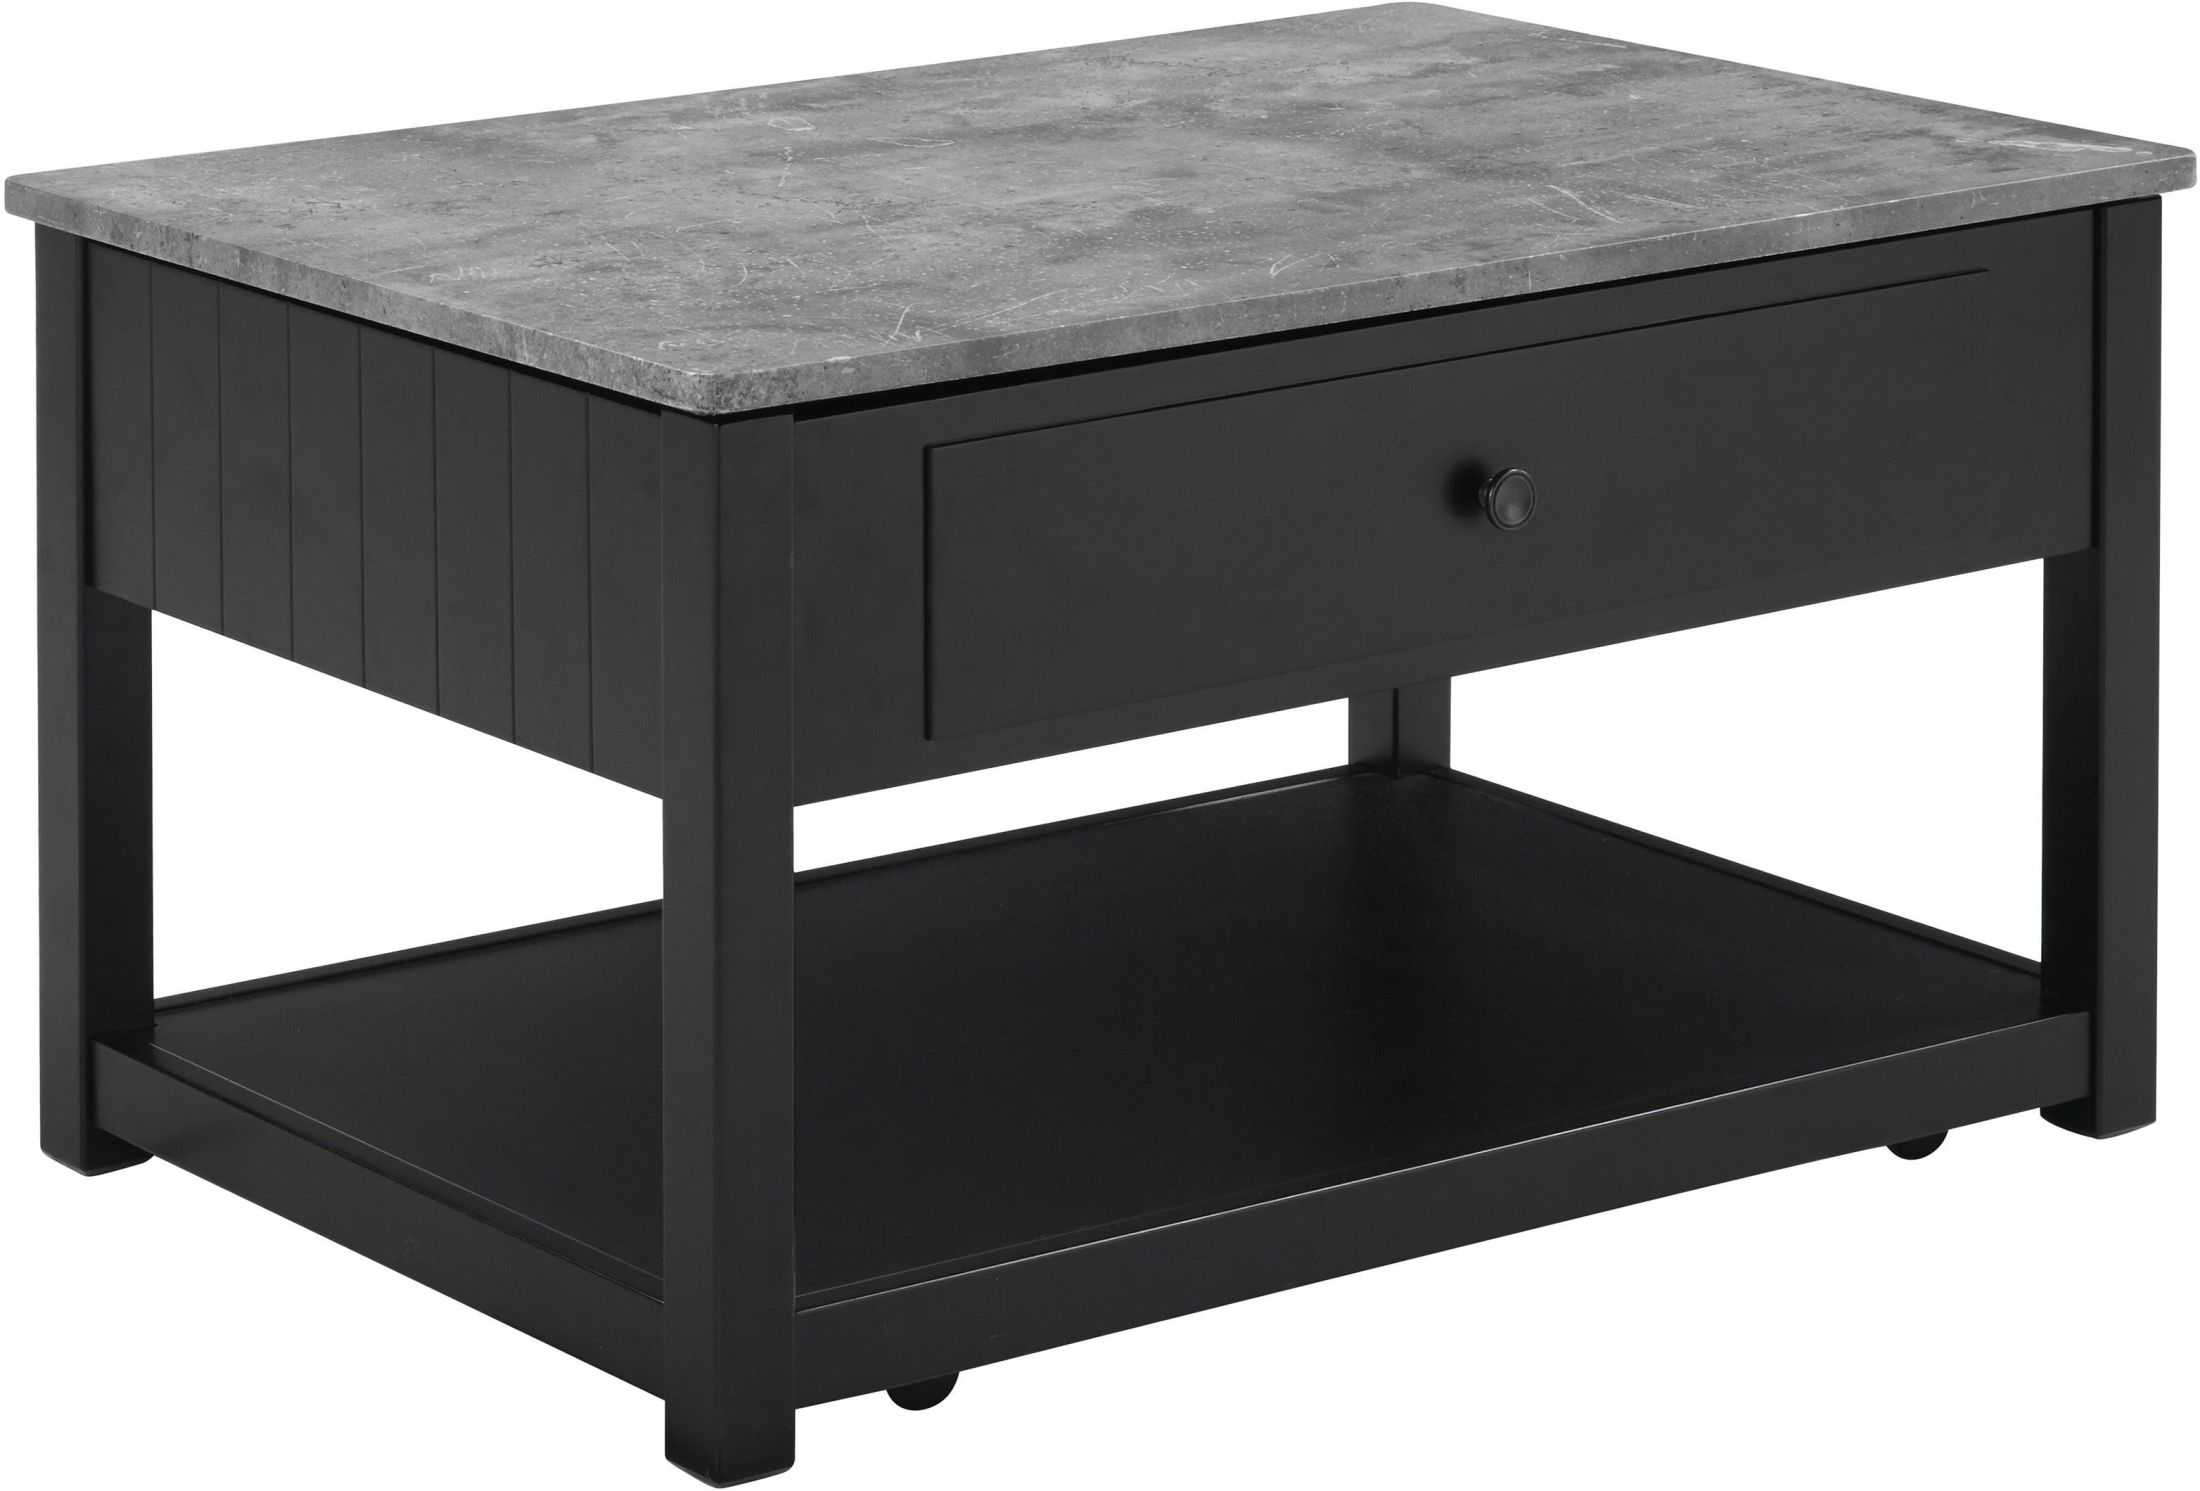 signature design by ashley ezmonei black and gray lift top cocktail table ezmonei collection. Black Bedroom Furniture Sets. Home Design Ideas